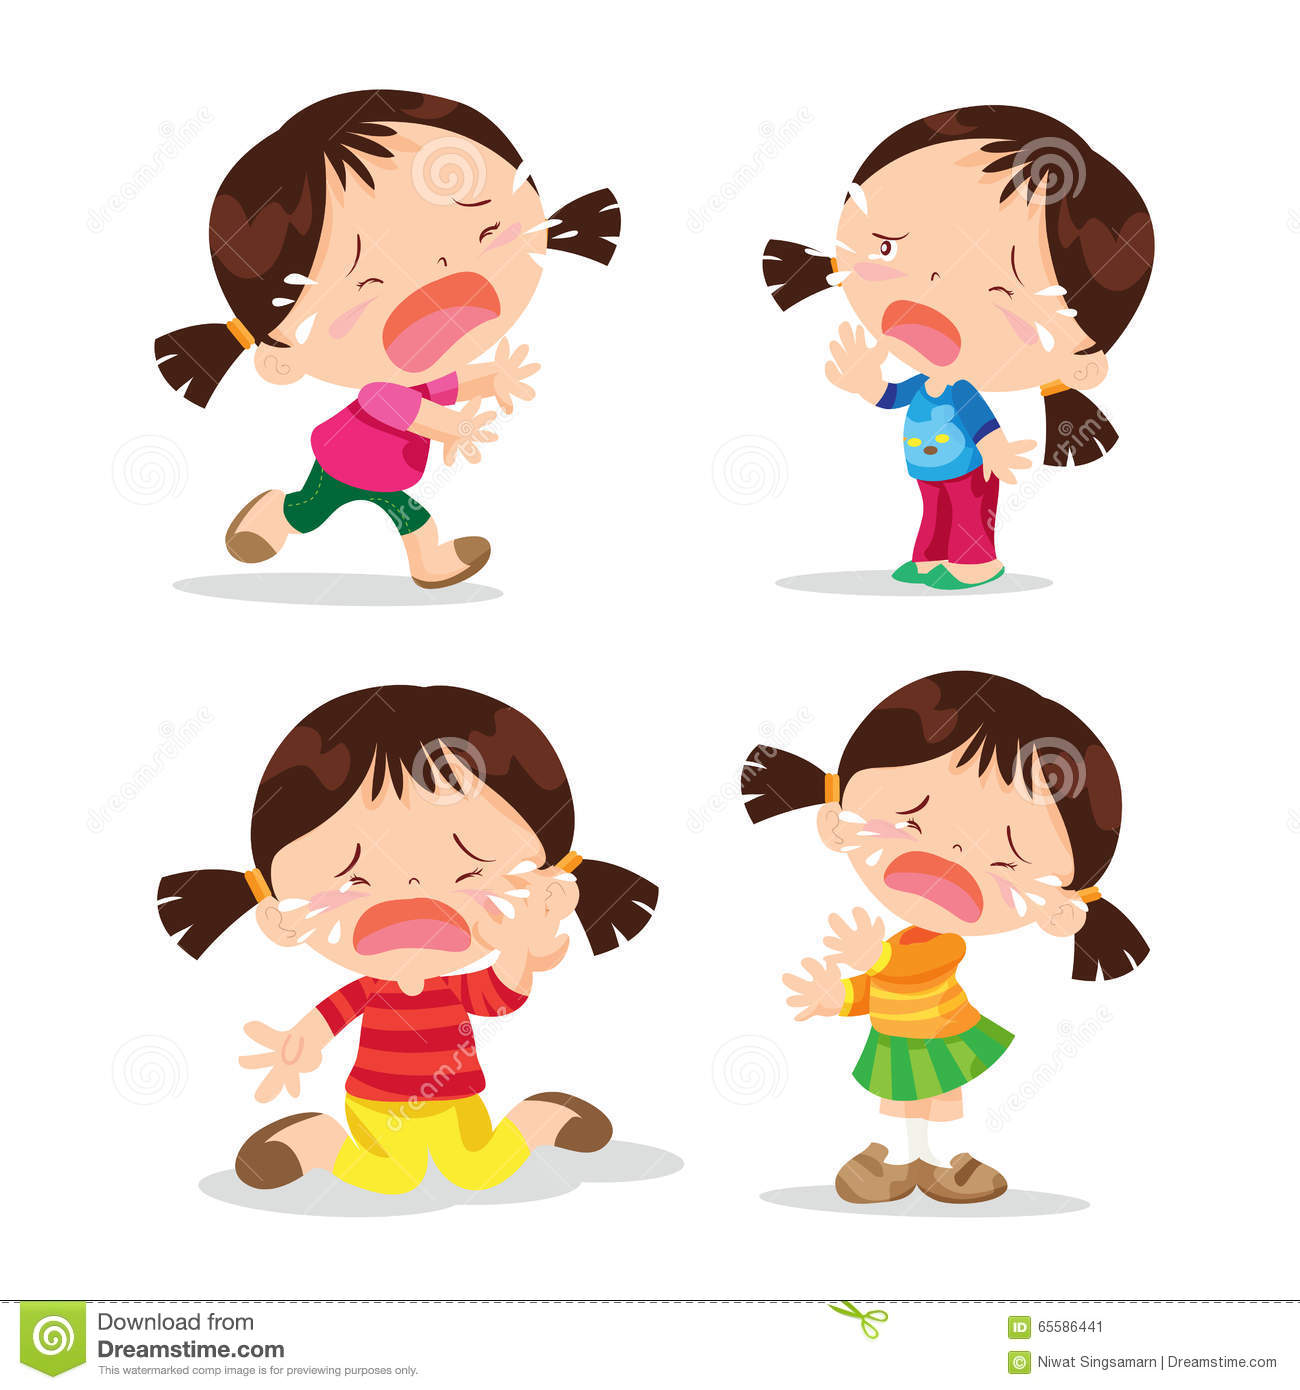 Cartoon Girl Crying Pics | cartoon.ankaperla.com